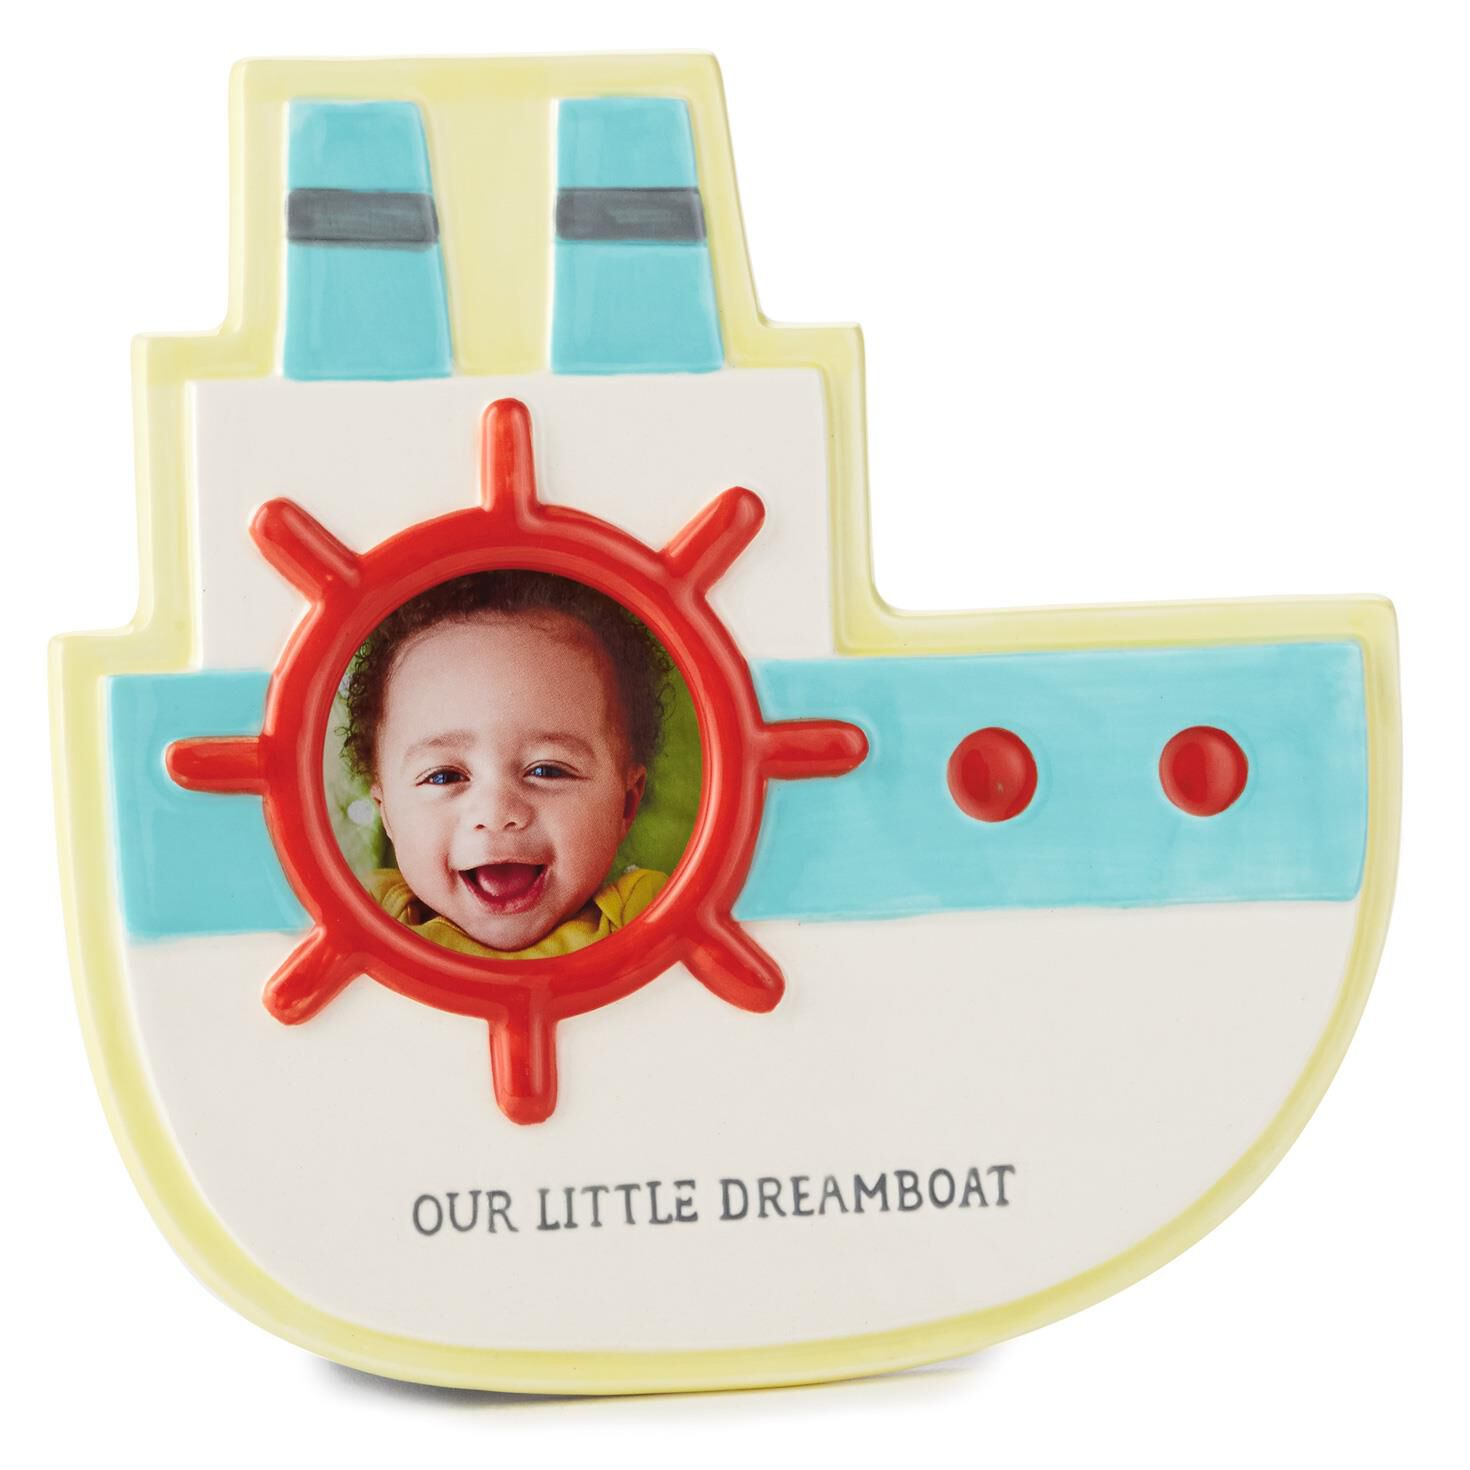 163 Best Images About 391 6 Ink It Up On Pinterest: Sailboat Transportation Picture Frame, 2x2